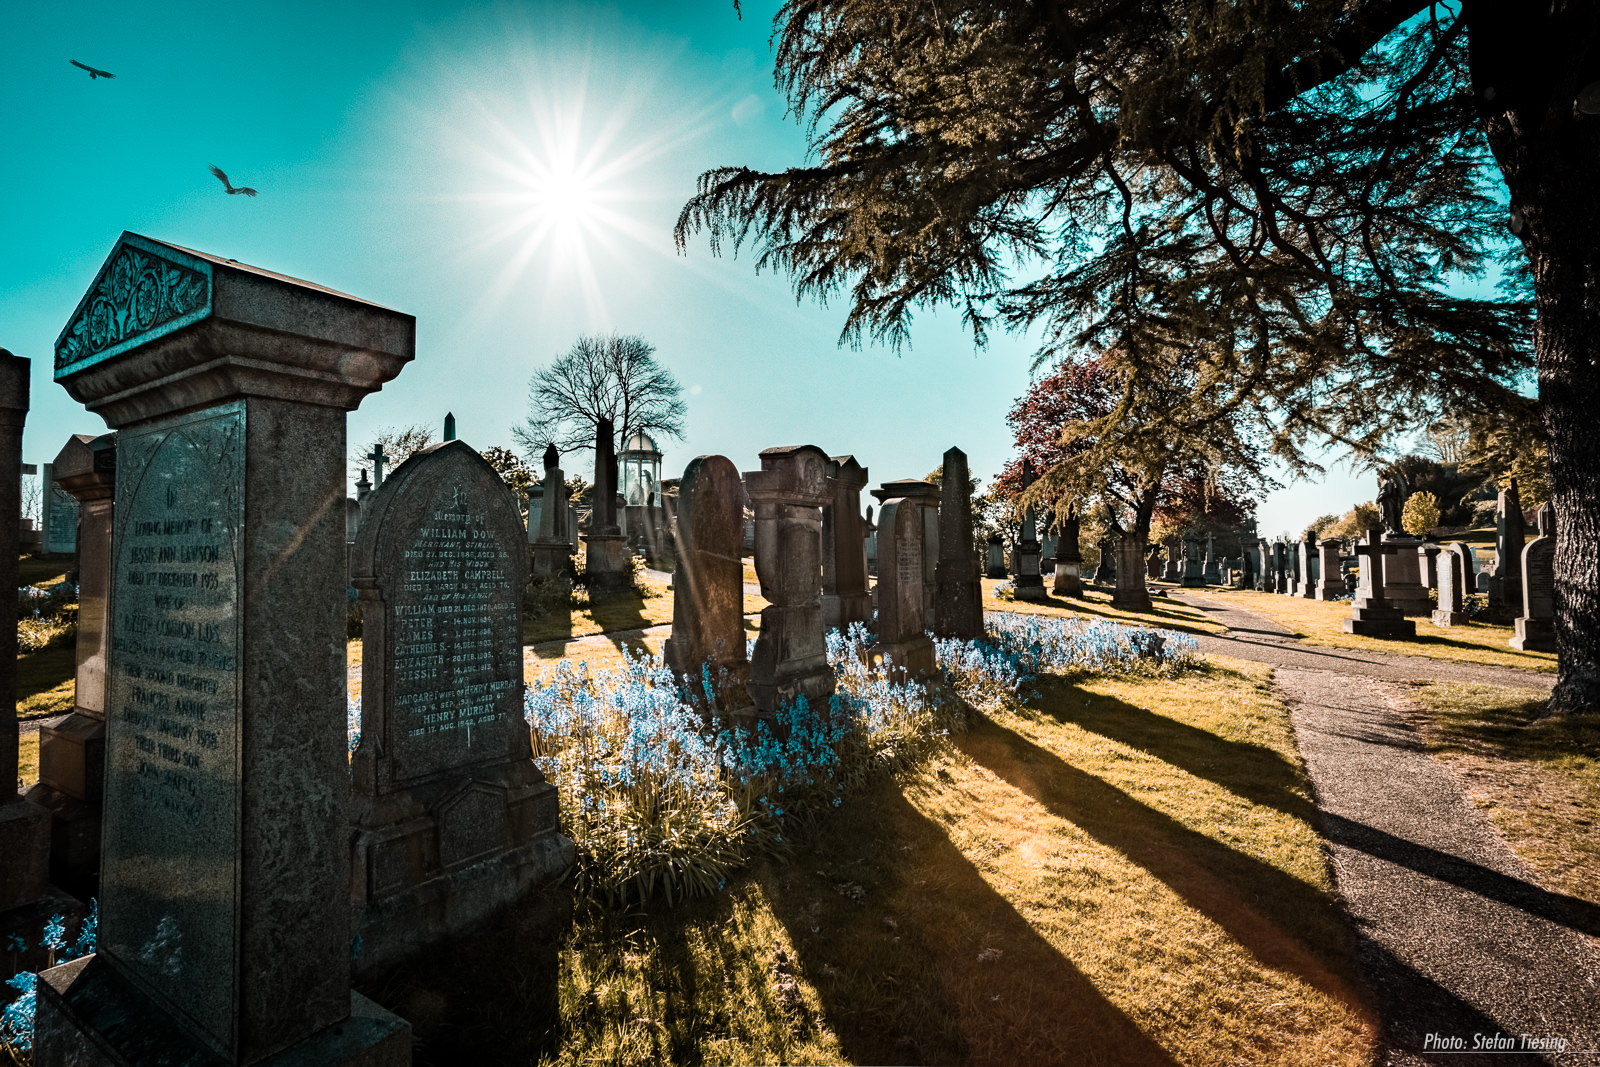 Sunset at Old Town Cemetery Stirling